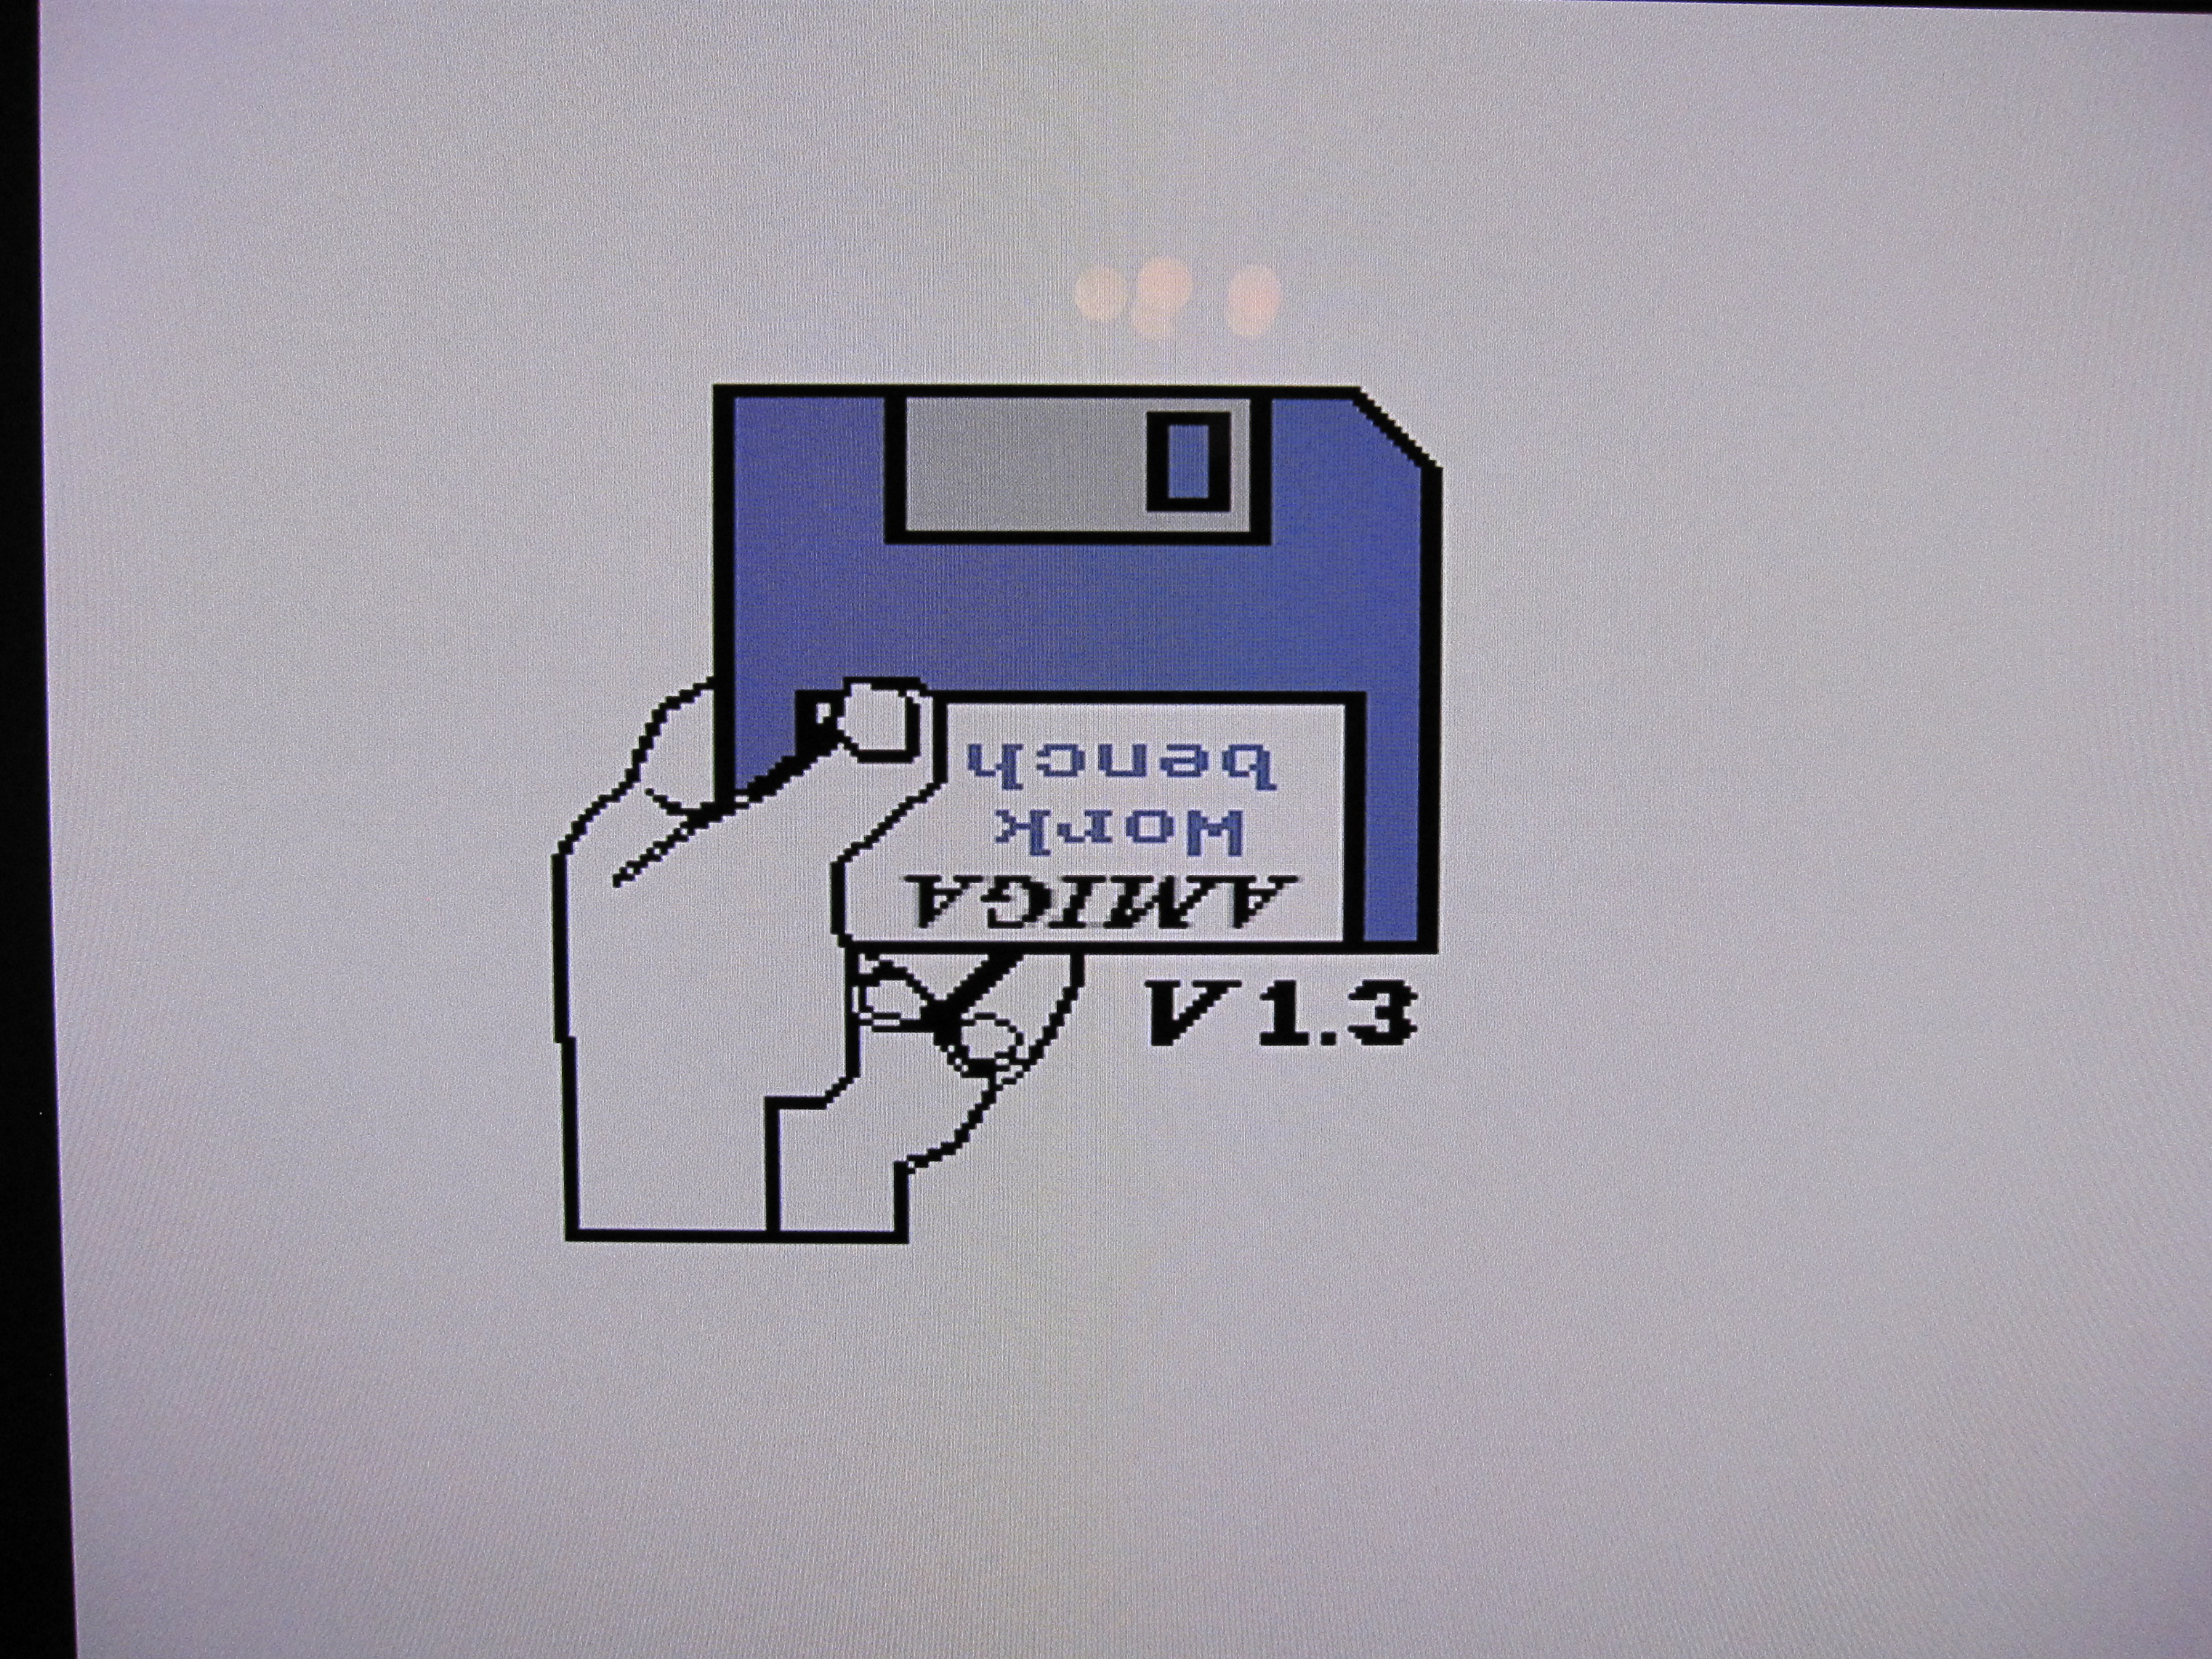 Brilliant Picture From Amiga With Rgb Scart Ilesjs Blog Rca To Schematic Advertisements